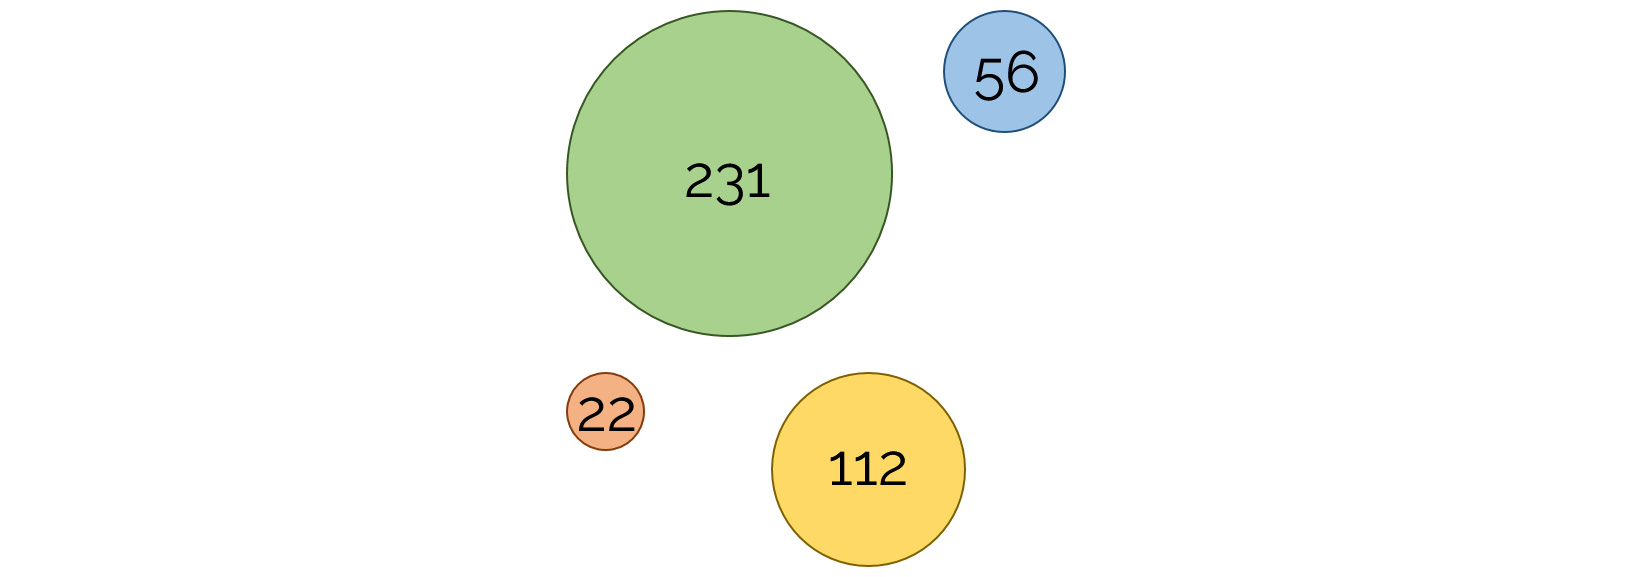 Figure 1.21: A diagram representing clusters of multiple sizes